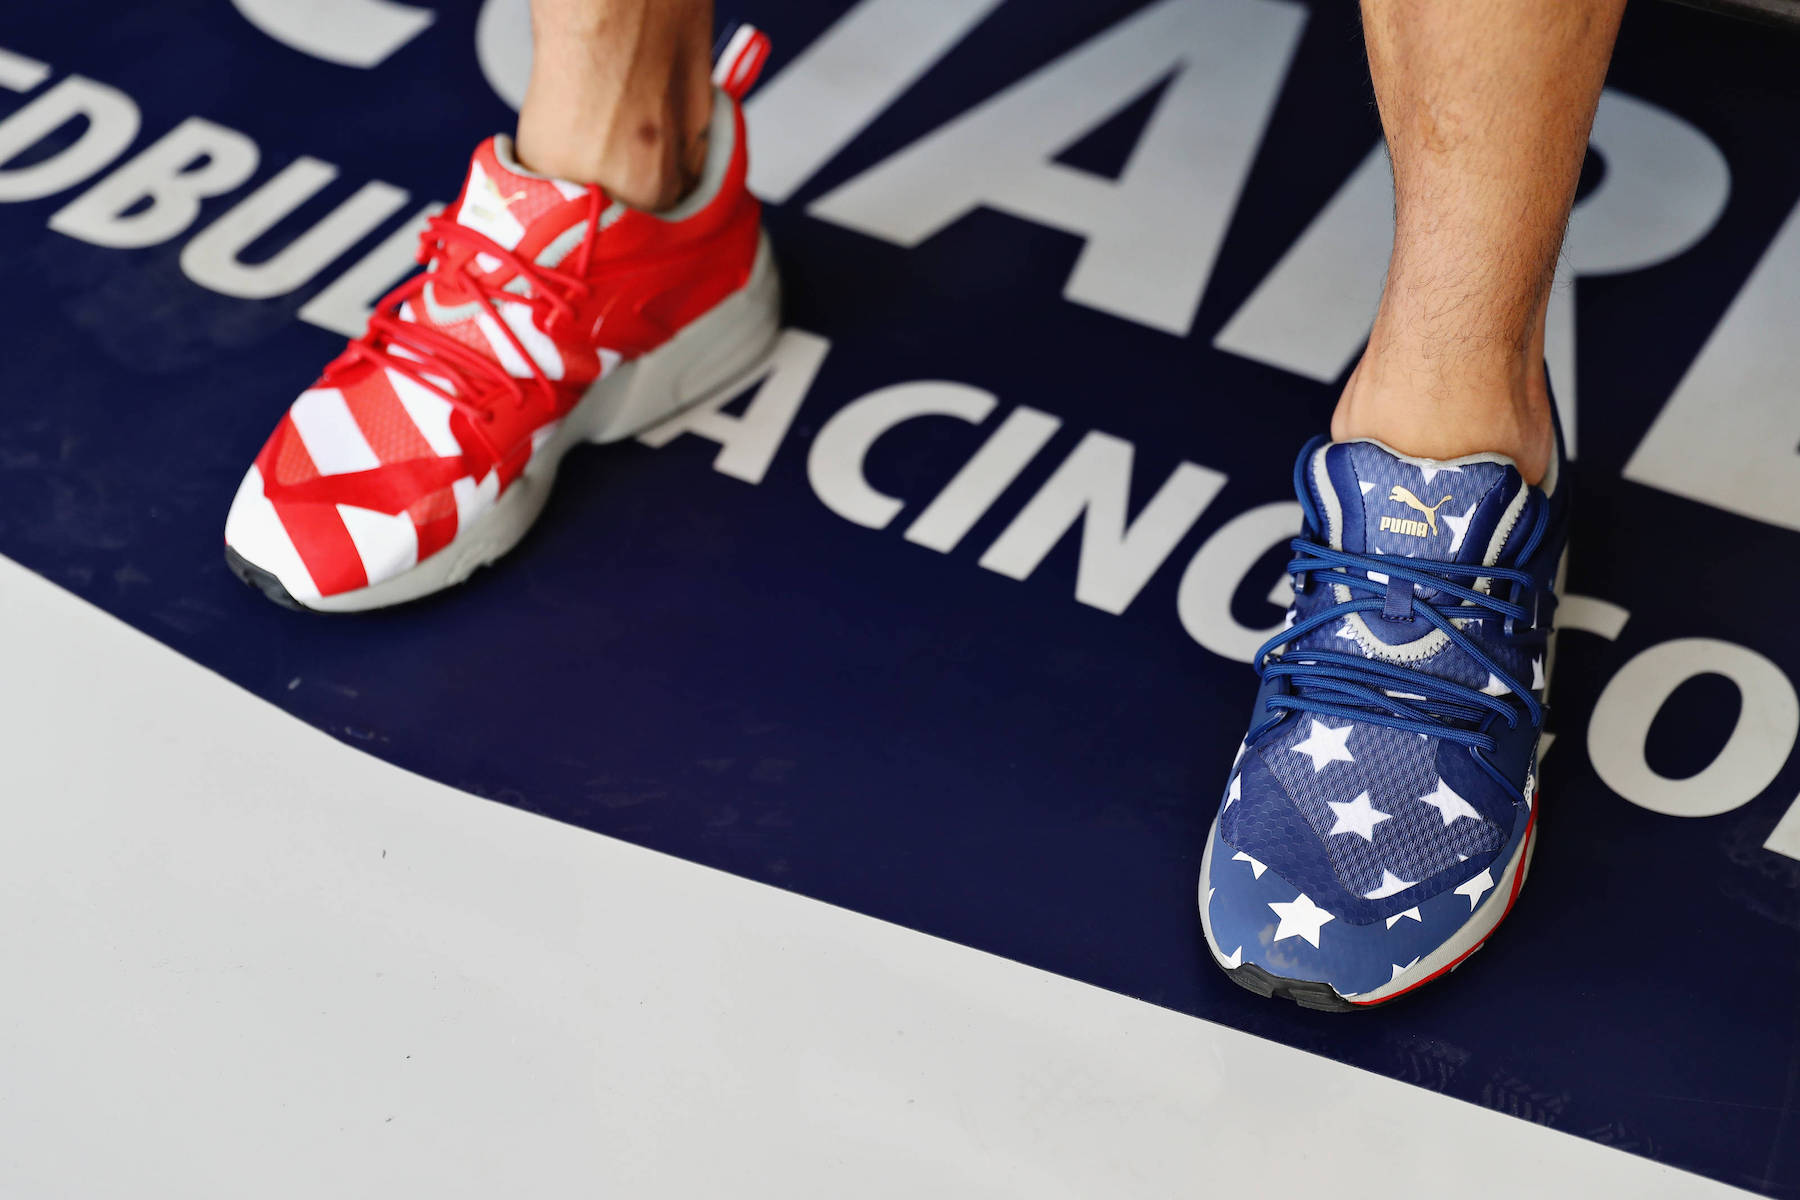 2016 Daniel Ricciardo shoes | 2016 USGP copy.jpg